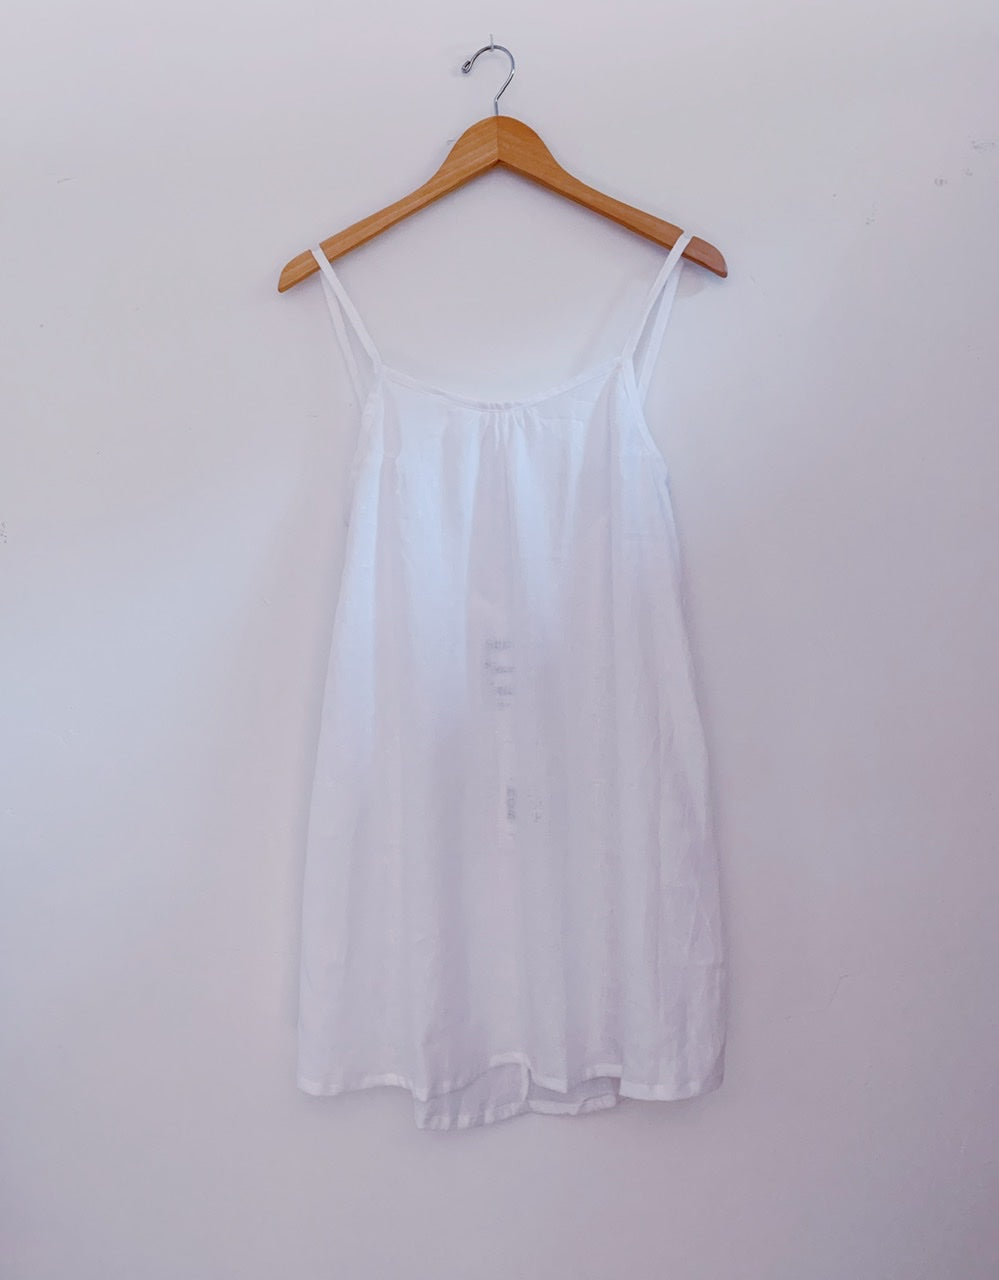 KAIONE SHORT DRESS - White Linen